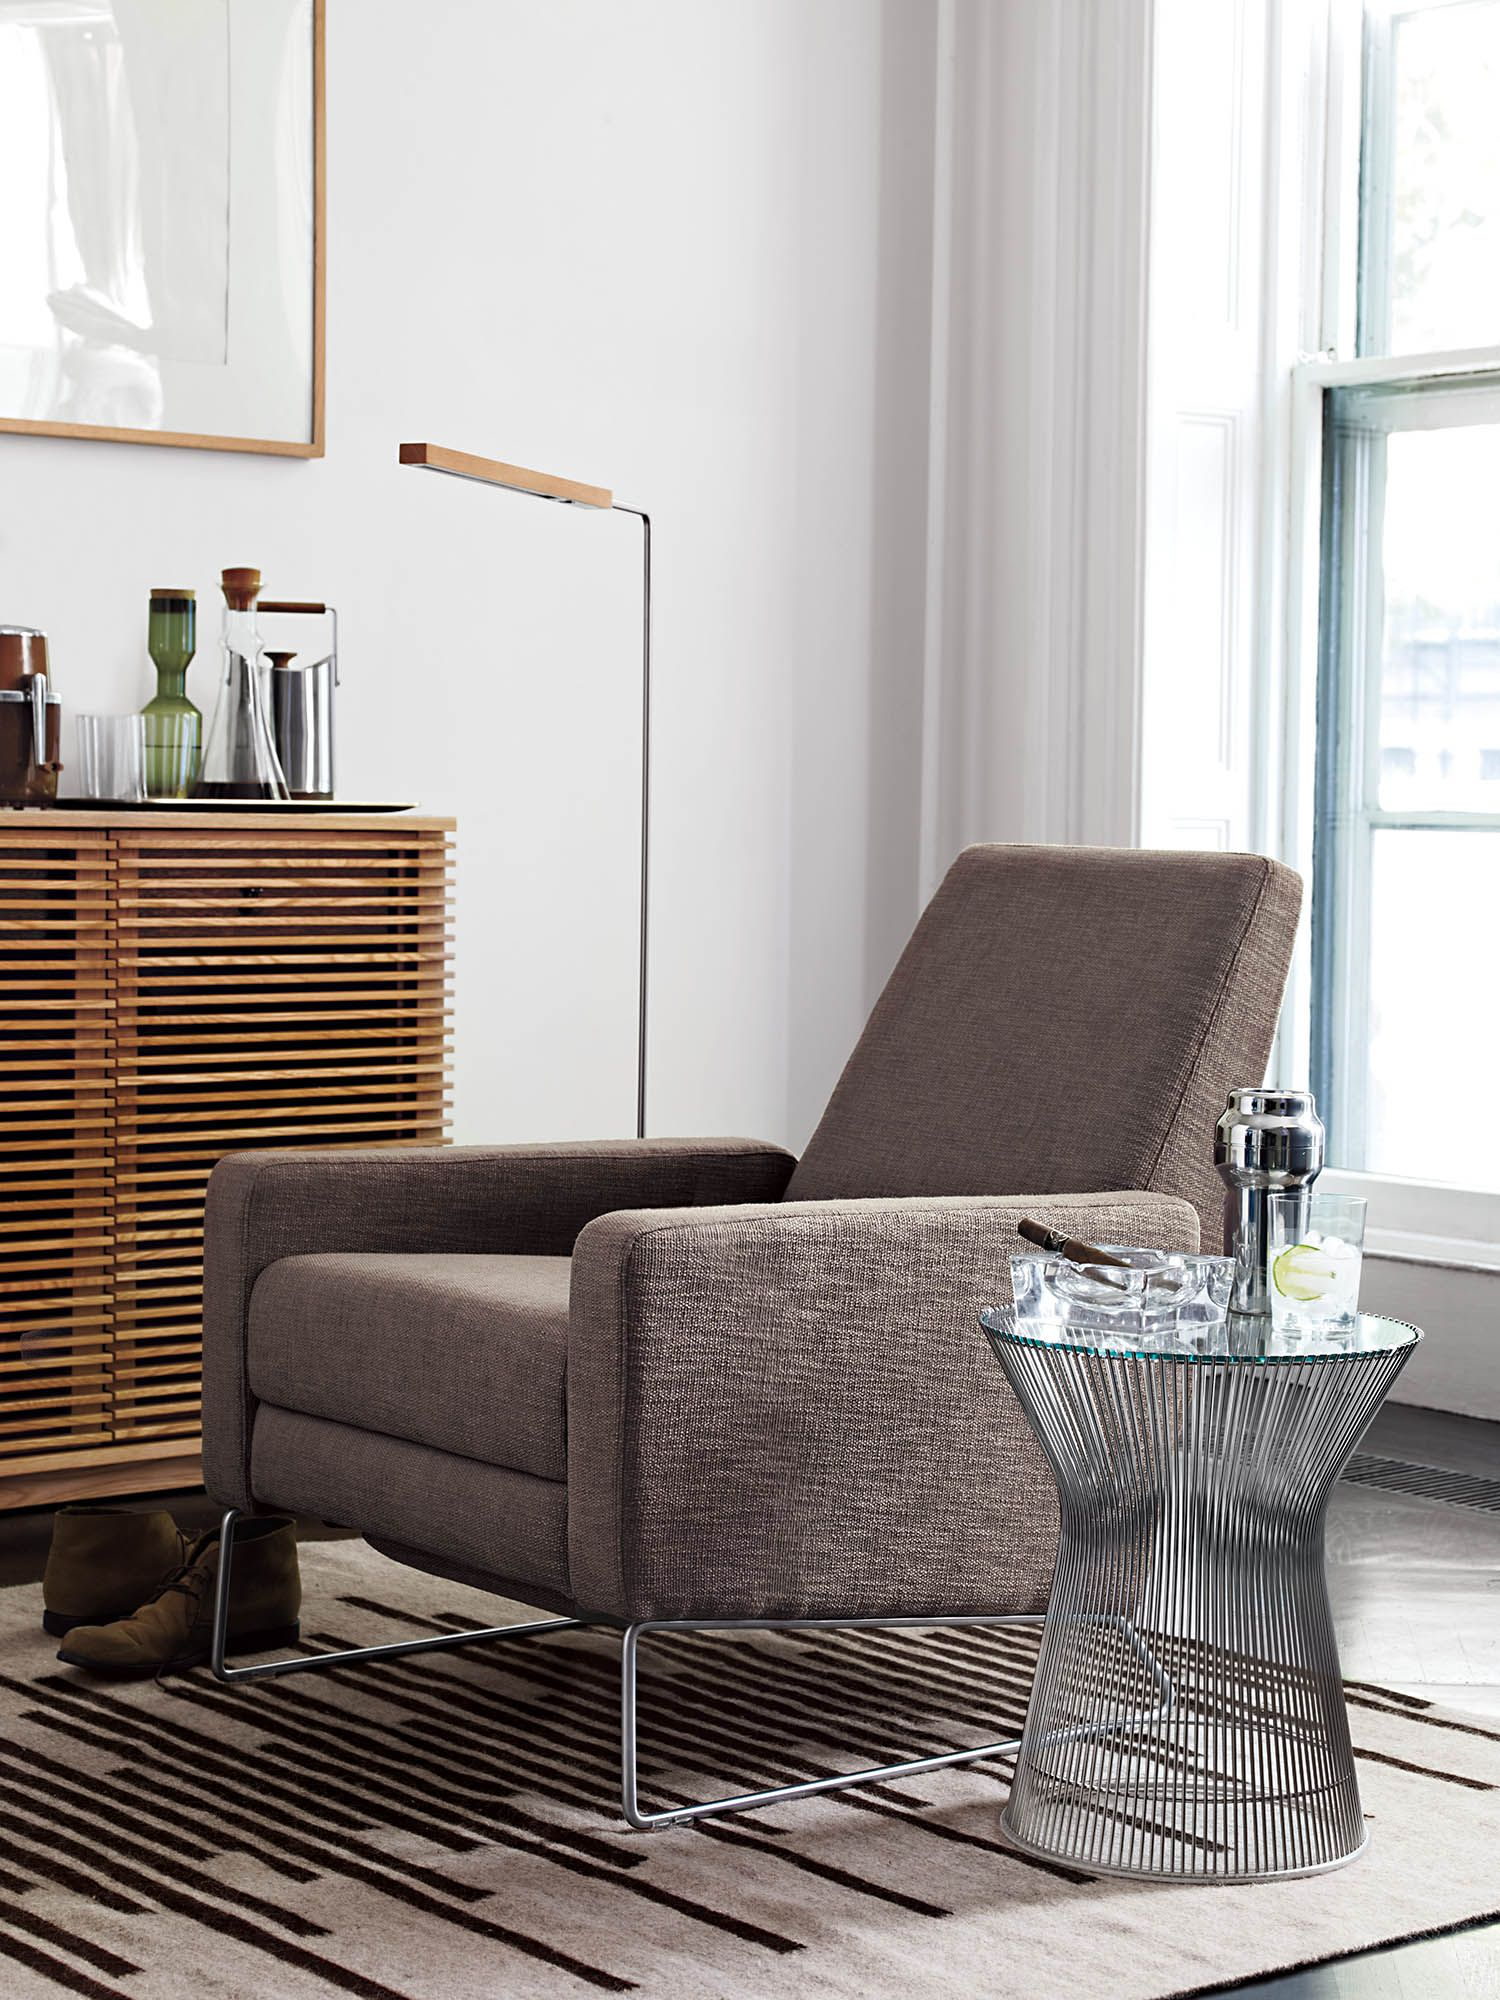 Beau Flight Recliner, Designed By Jeffrey Bernett And Nicholas Dodziuk. DWR,  Styled By Studio